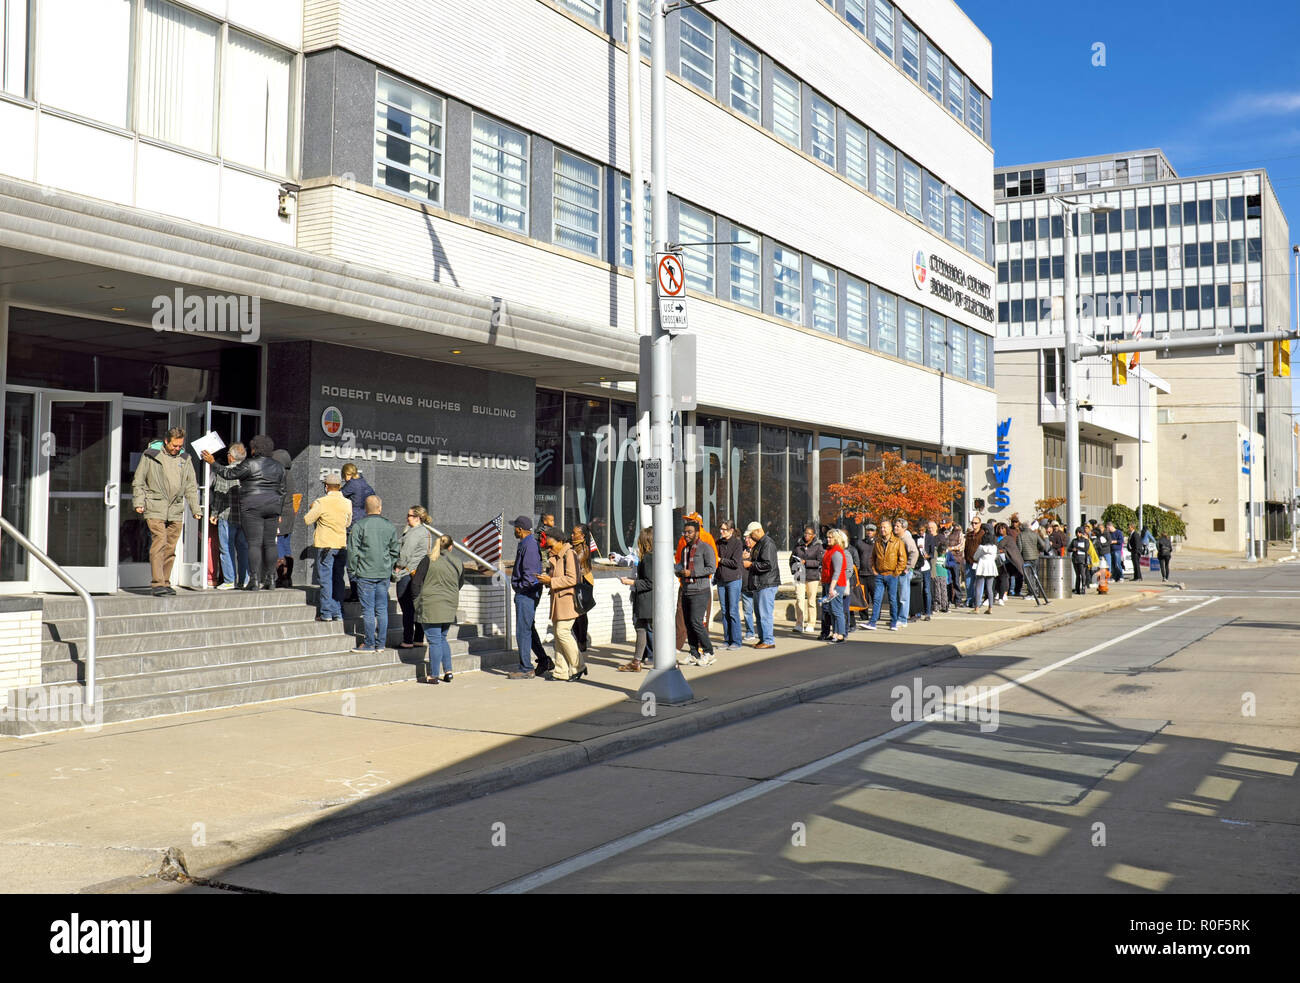 Cleveland, Ohio, USA.  4th Nov, 2018.  A diverse crowd of early voters wait in line to cast ballots for the 2018 US midterm elections.  The line at the Cuyahoga County Board of Elections goes down Superior Avenue and wraps around the building with an unprecedented number of early voters in the US making this one of the most momentous midterm elections in history.  Credit: Mark Kanning/Alamy Live News. Stock Photo